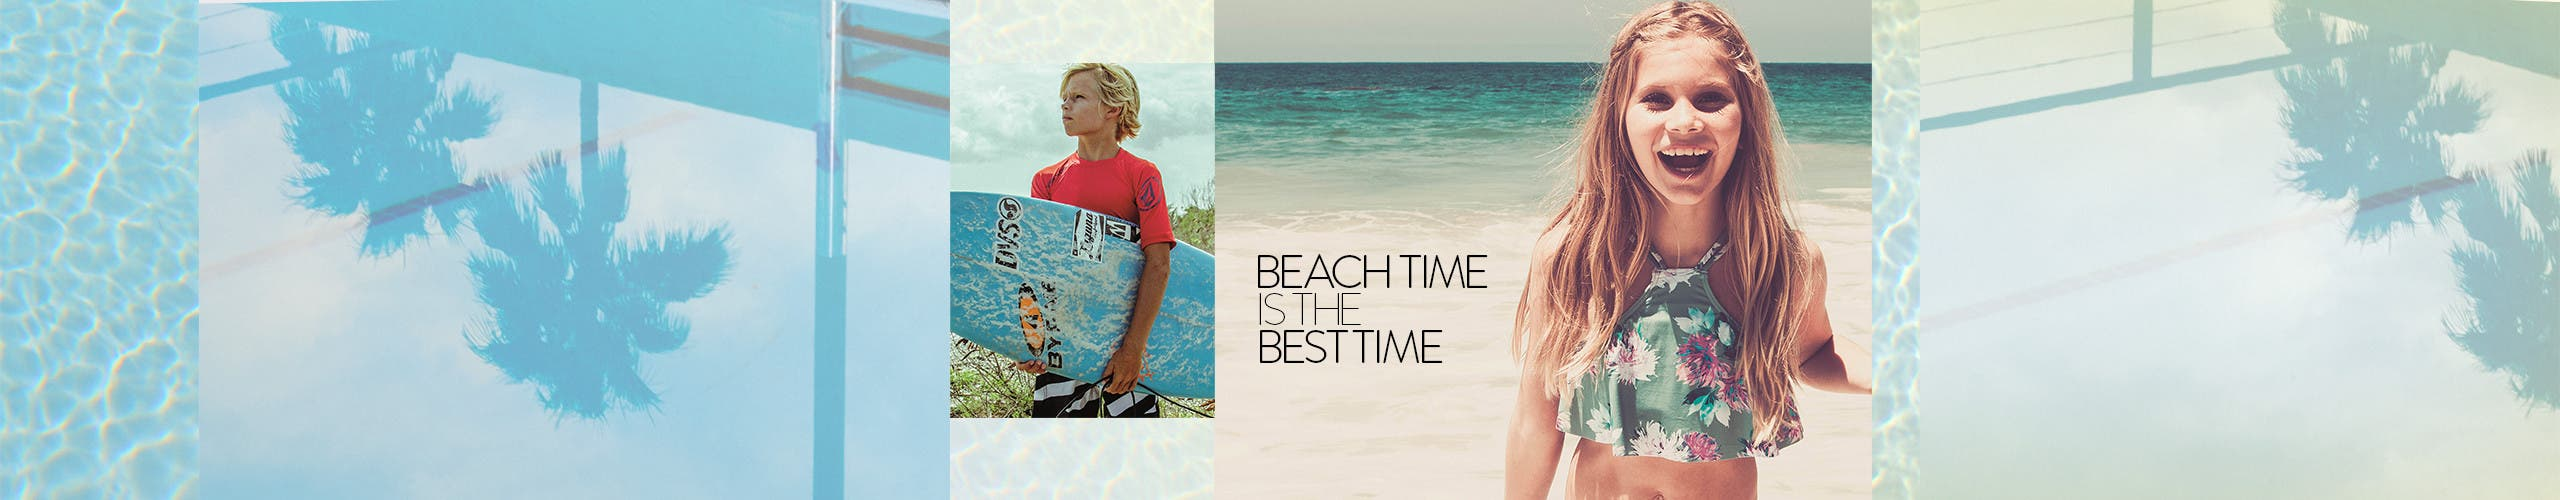 Beach time is the best time. Boys' and girls' swimsuits.